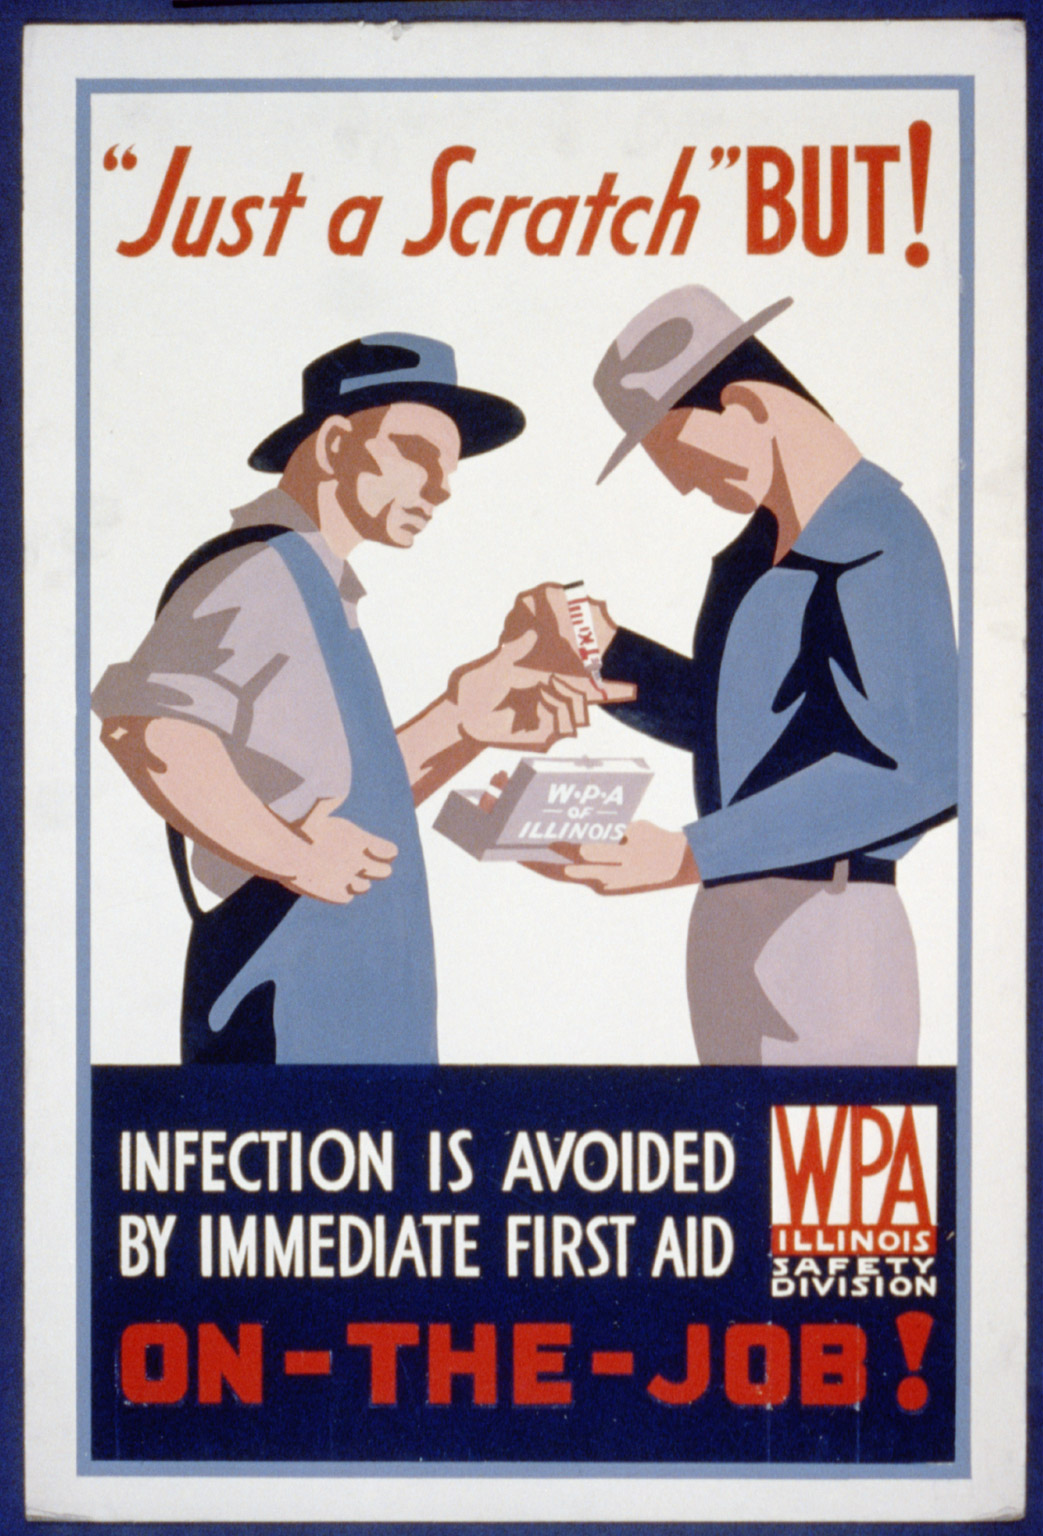 Poster for Illinois WPA Safety Division promoting immediate treatment of on-the-job injuries. Created between 1936 and 1941.